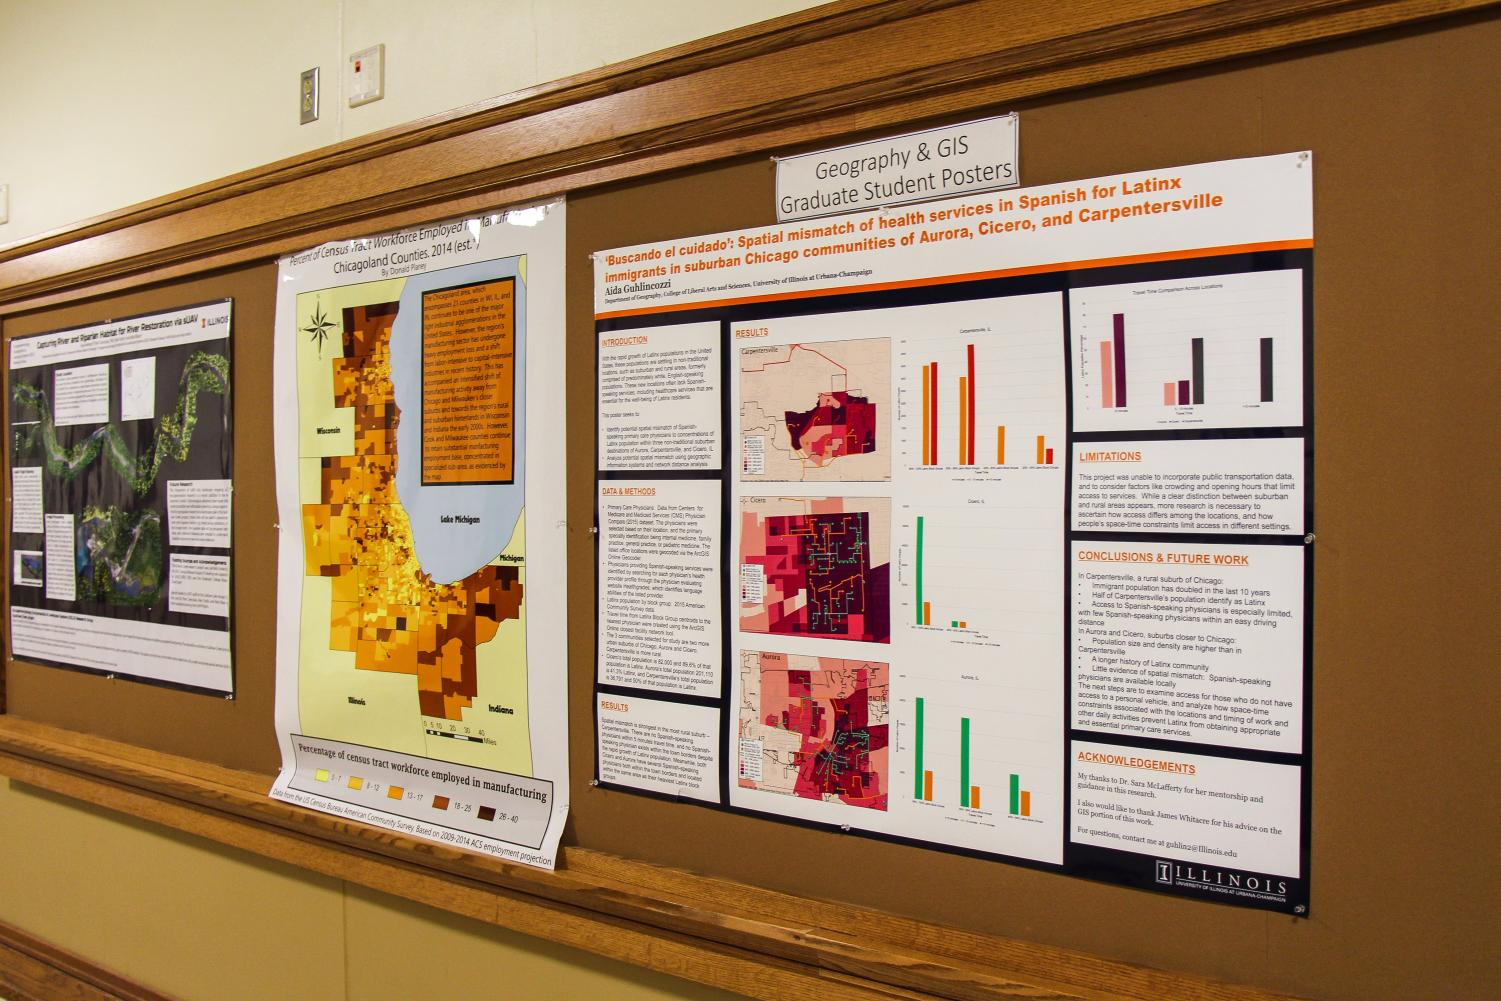 Geography & GIS major graduate students created posters of their research and presented them in the halls of the Natural Science Building.